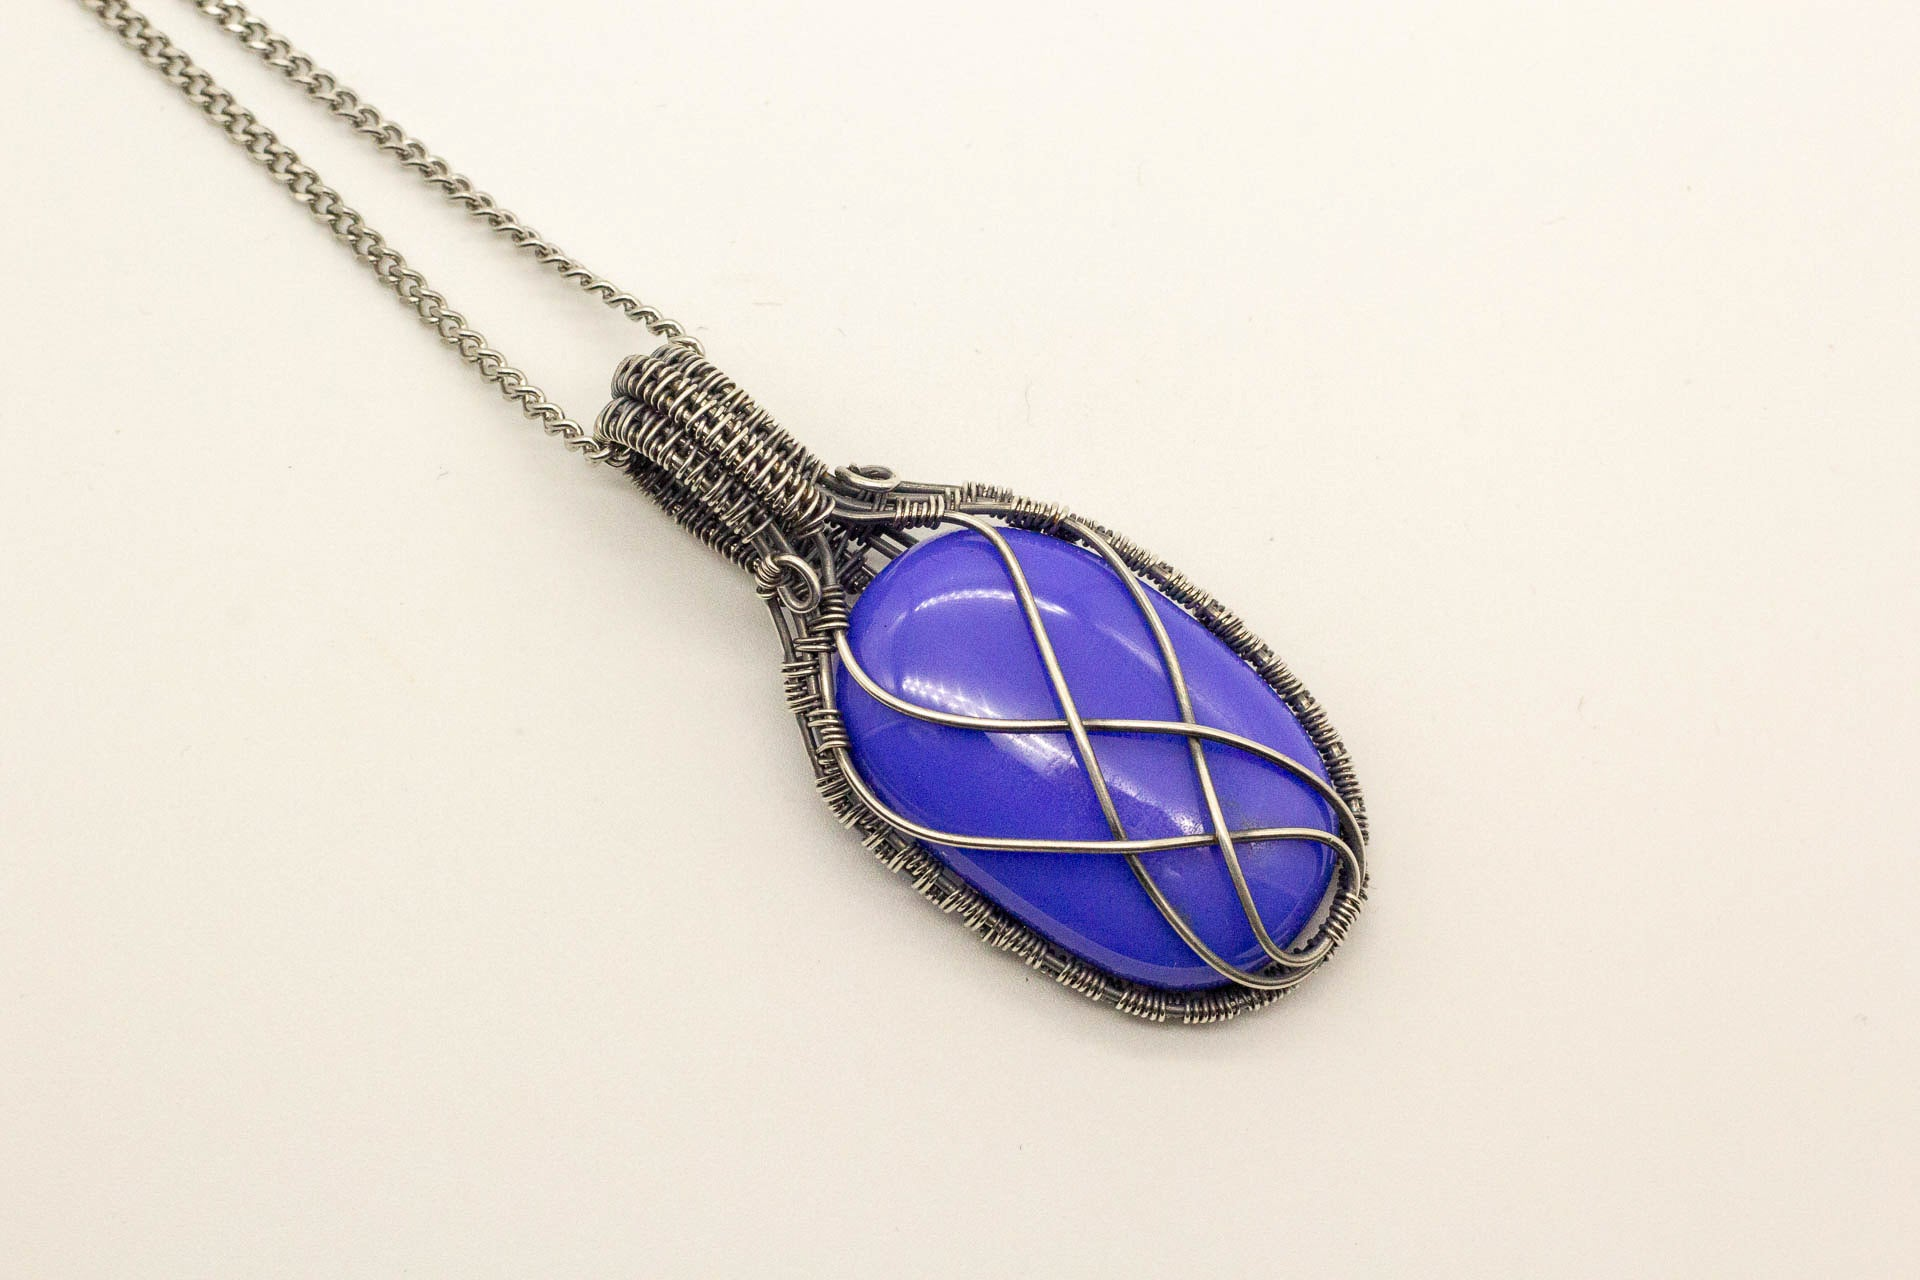 blue-fused-glass-pendant-sterling-silver-wire-wrapping-nymph-in-the-woods-jewelry